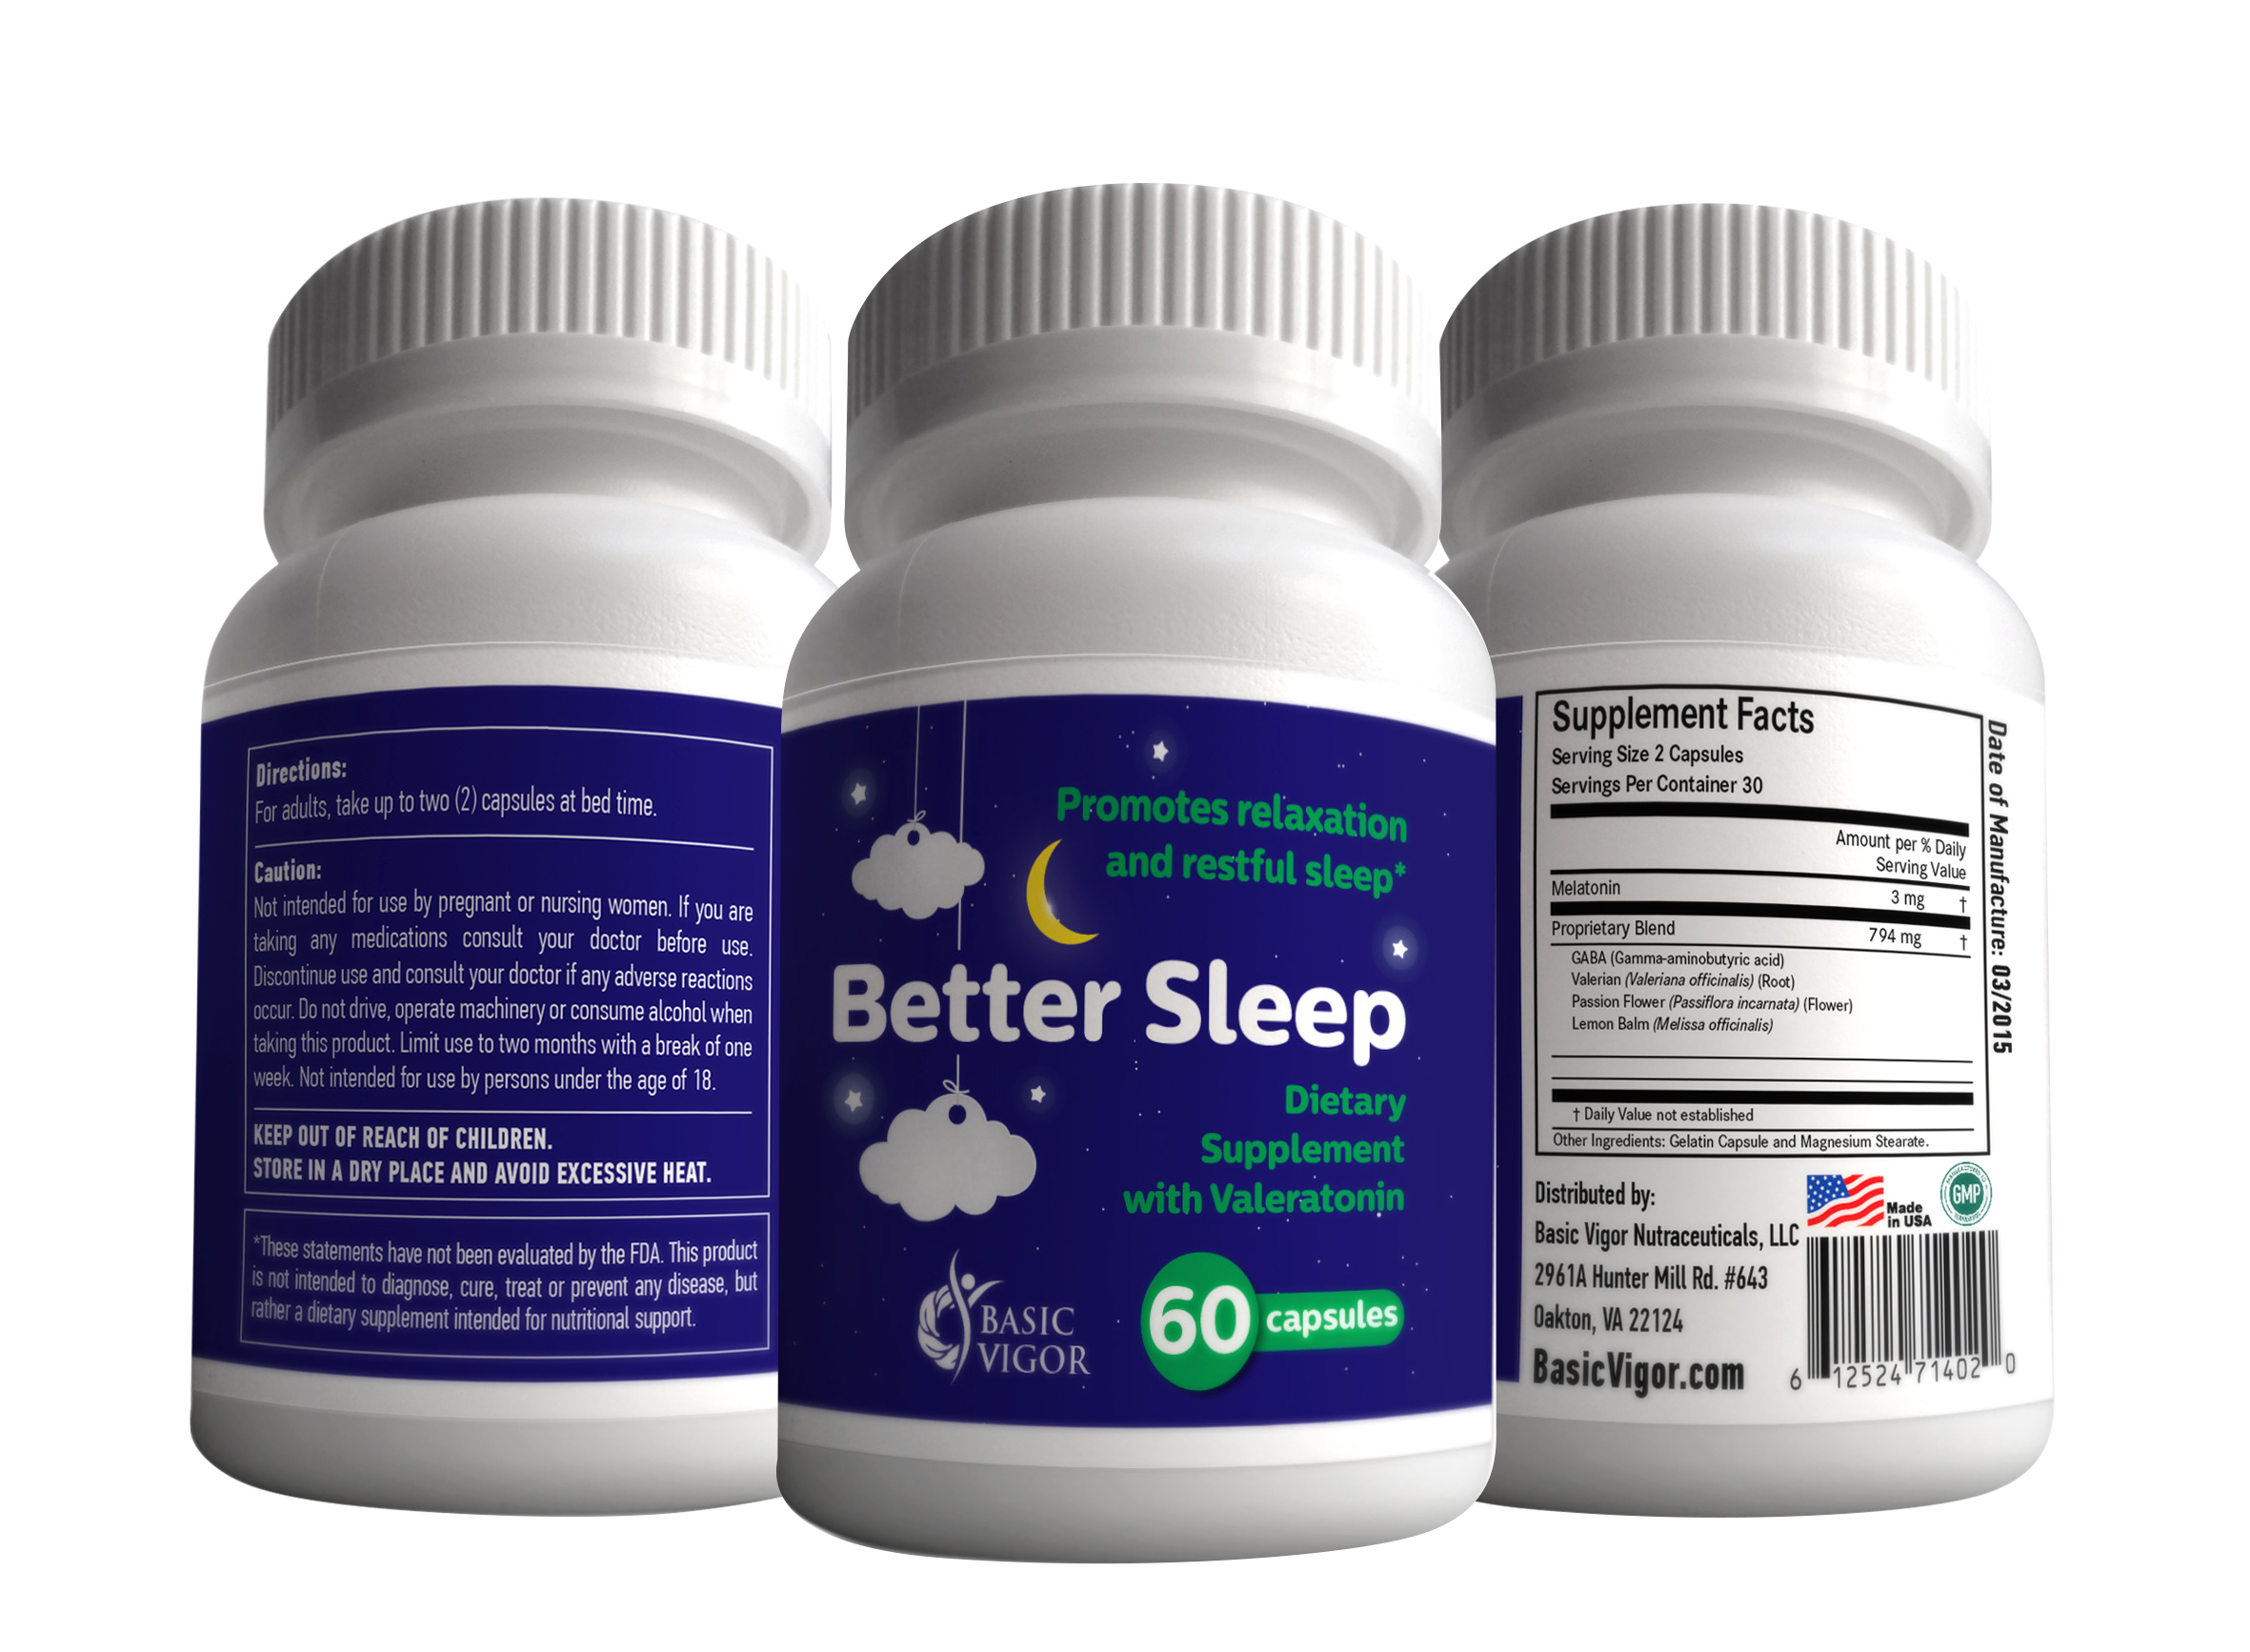 Better Sleep Valeratonin Natural Relaxation Aid from Basic Vigor Nutraceuticals contains melatonin and a proprietary blend of valerian, GABA, passion flower and lemon balm.